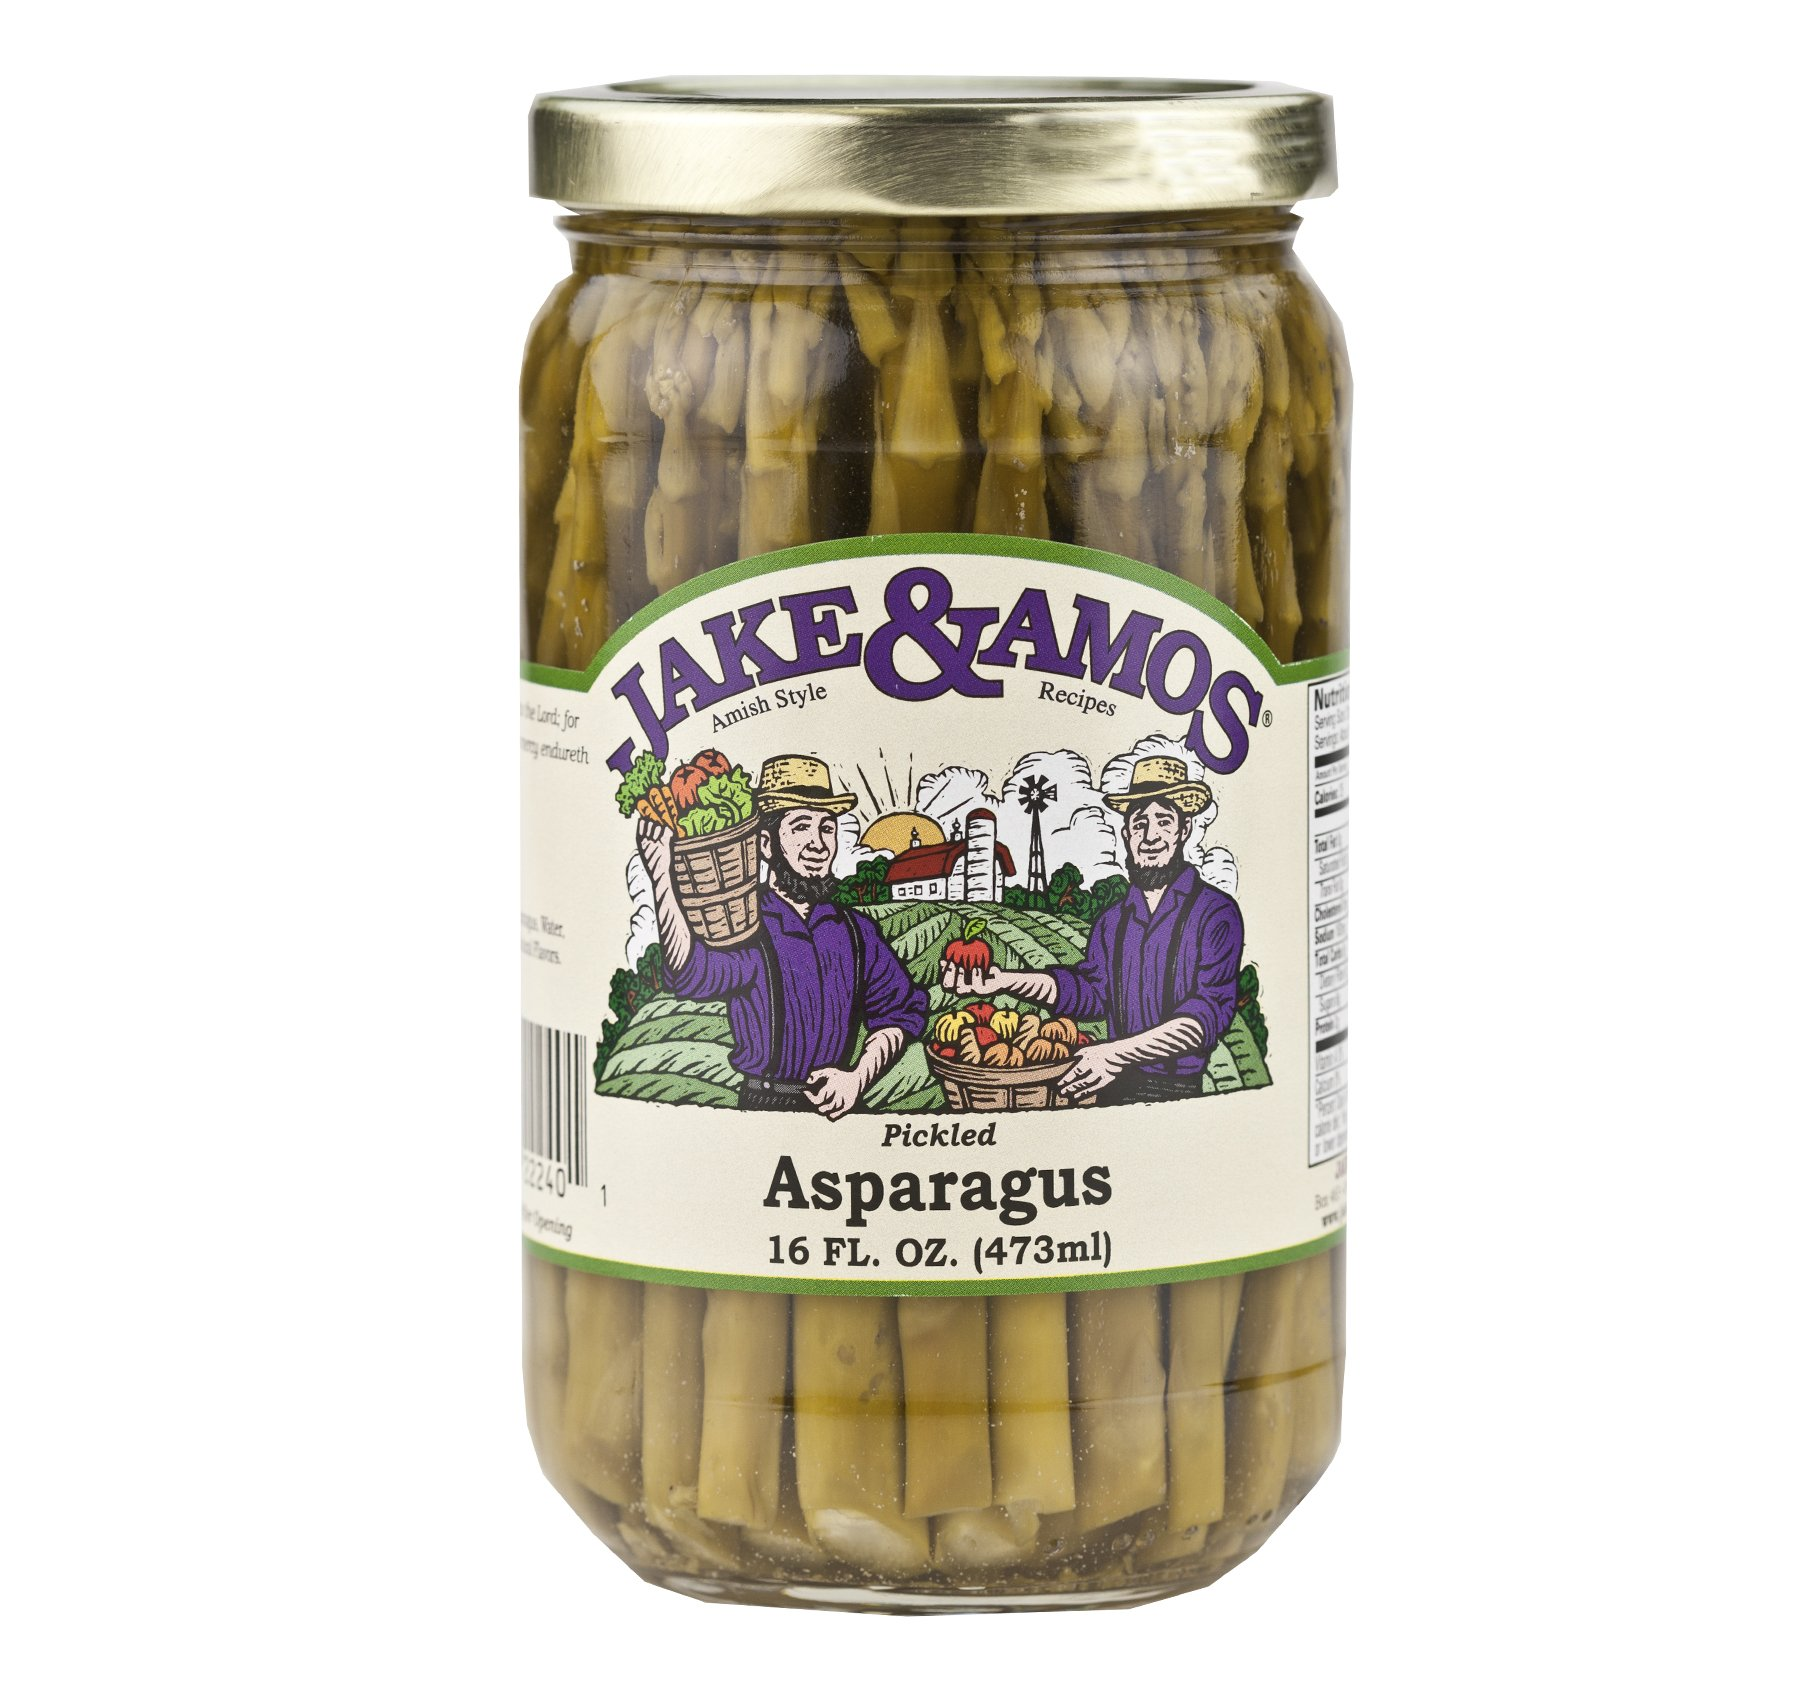 Jake & Amos Pickled Asparagus 16 oz. (3 Jars) - Vegan, Non-GMO - Traditional Pickled Recipe - Filled with Vitamin K and Vitamin B